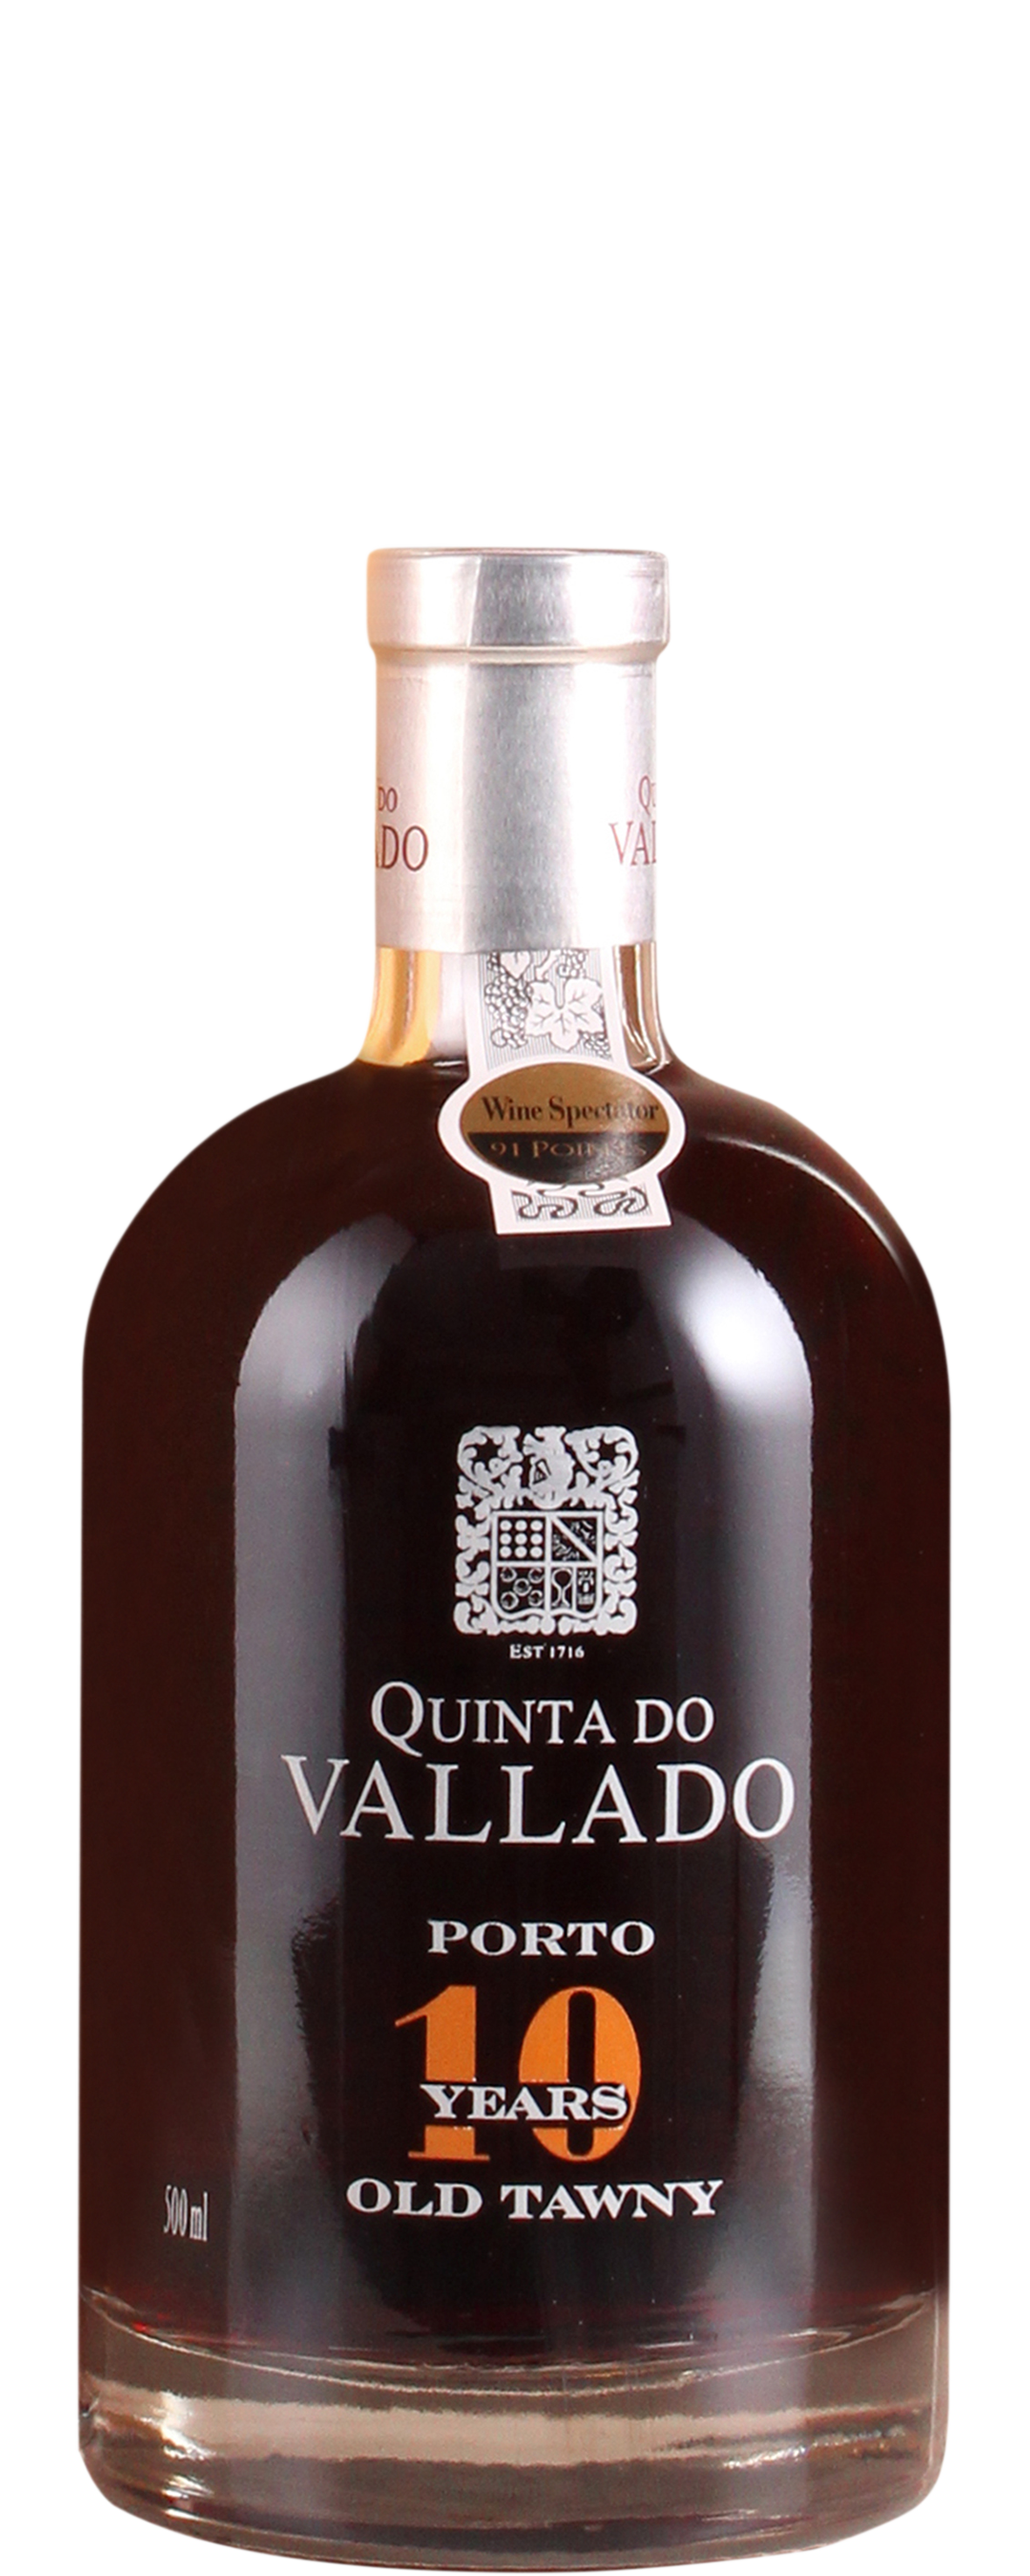 10-years Old Tawny Port, 20% vol.